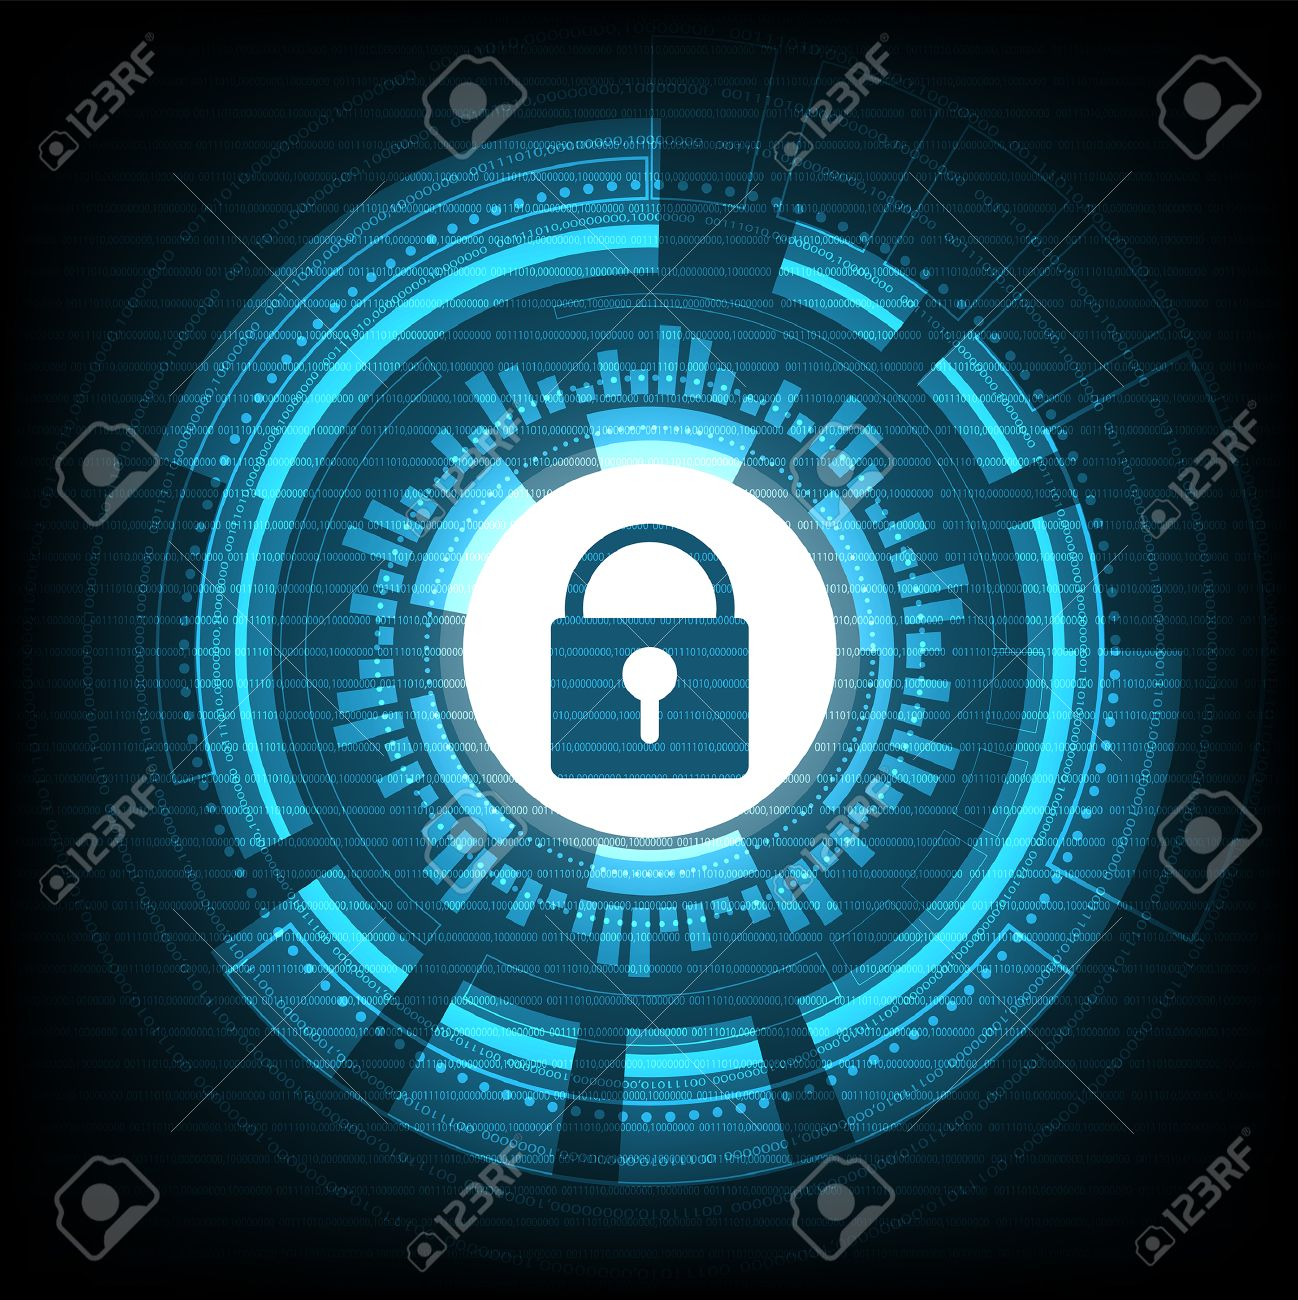 Web Security Clipart cyberspace